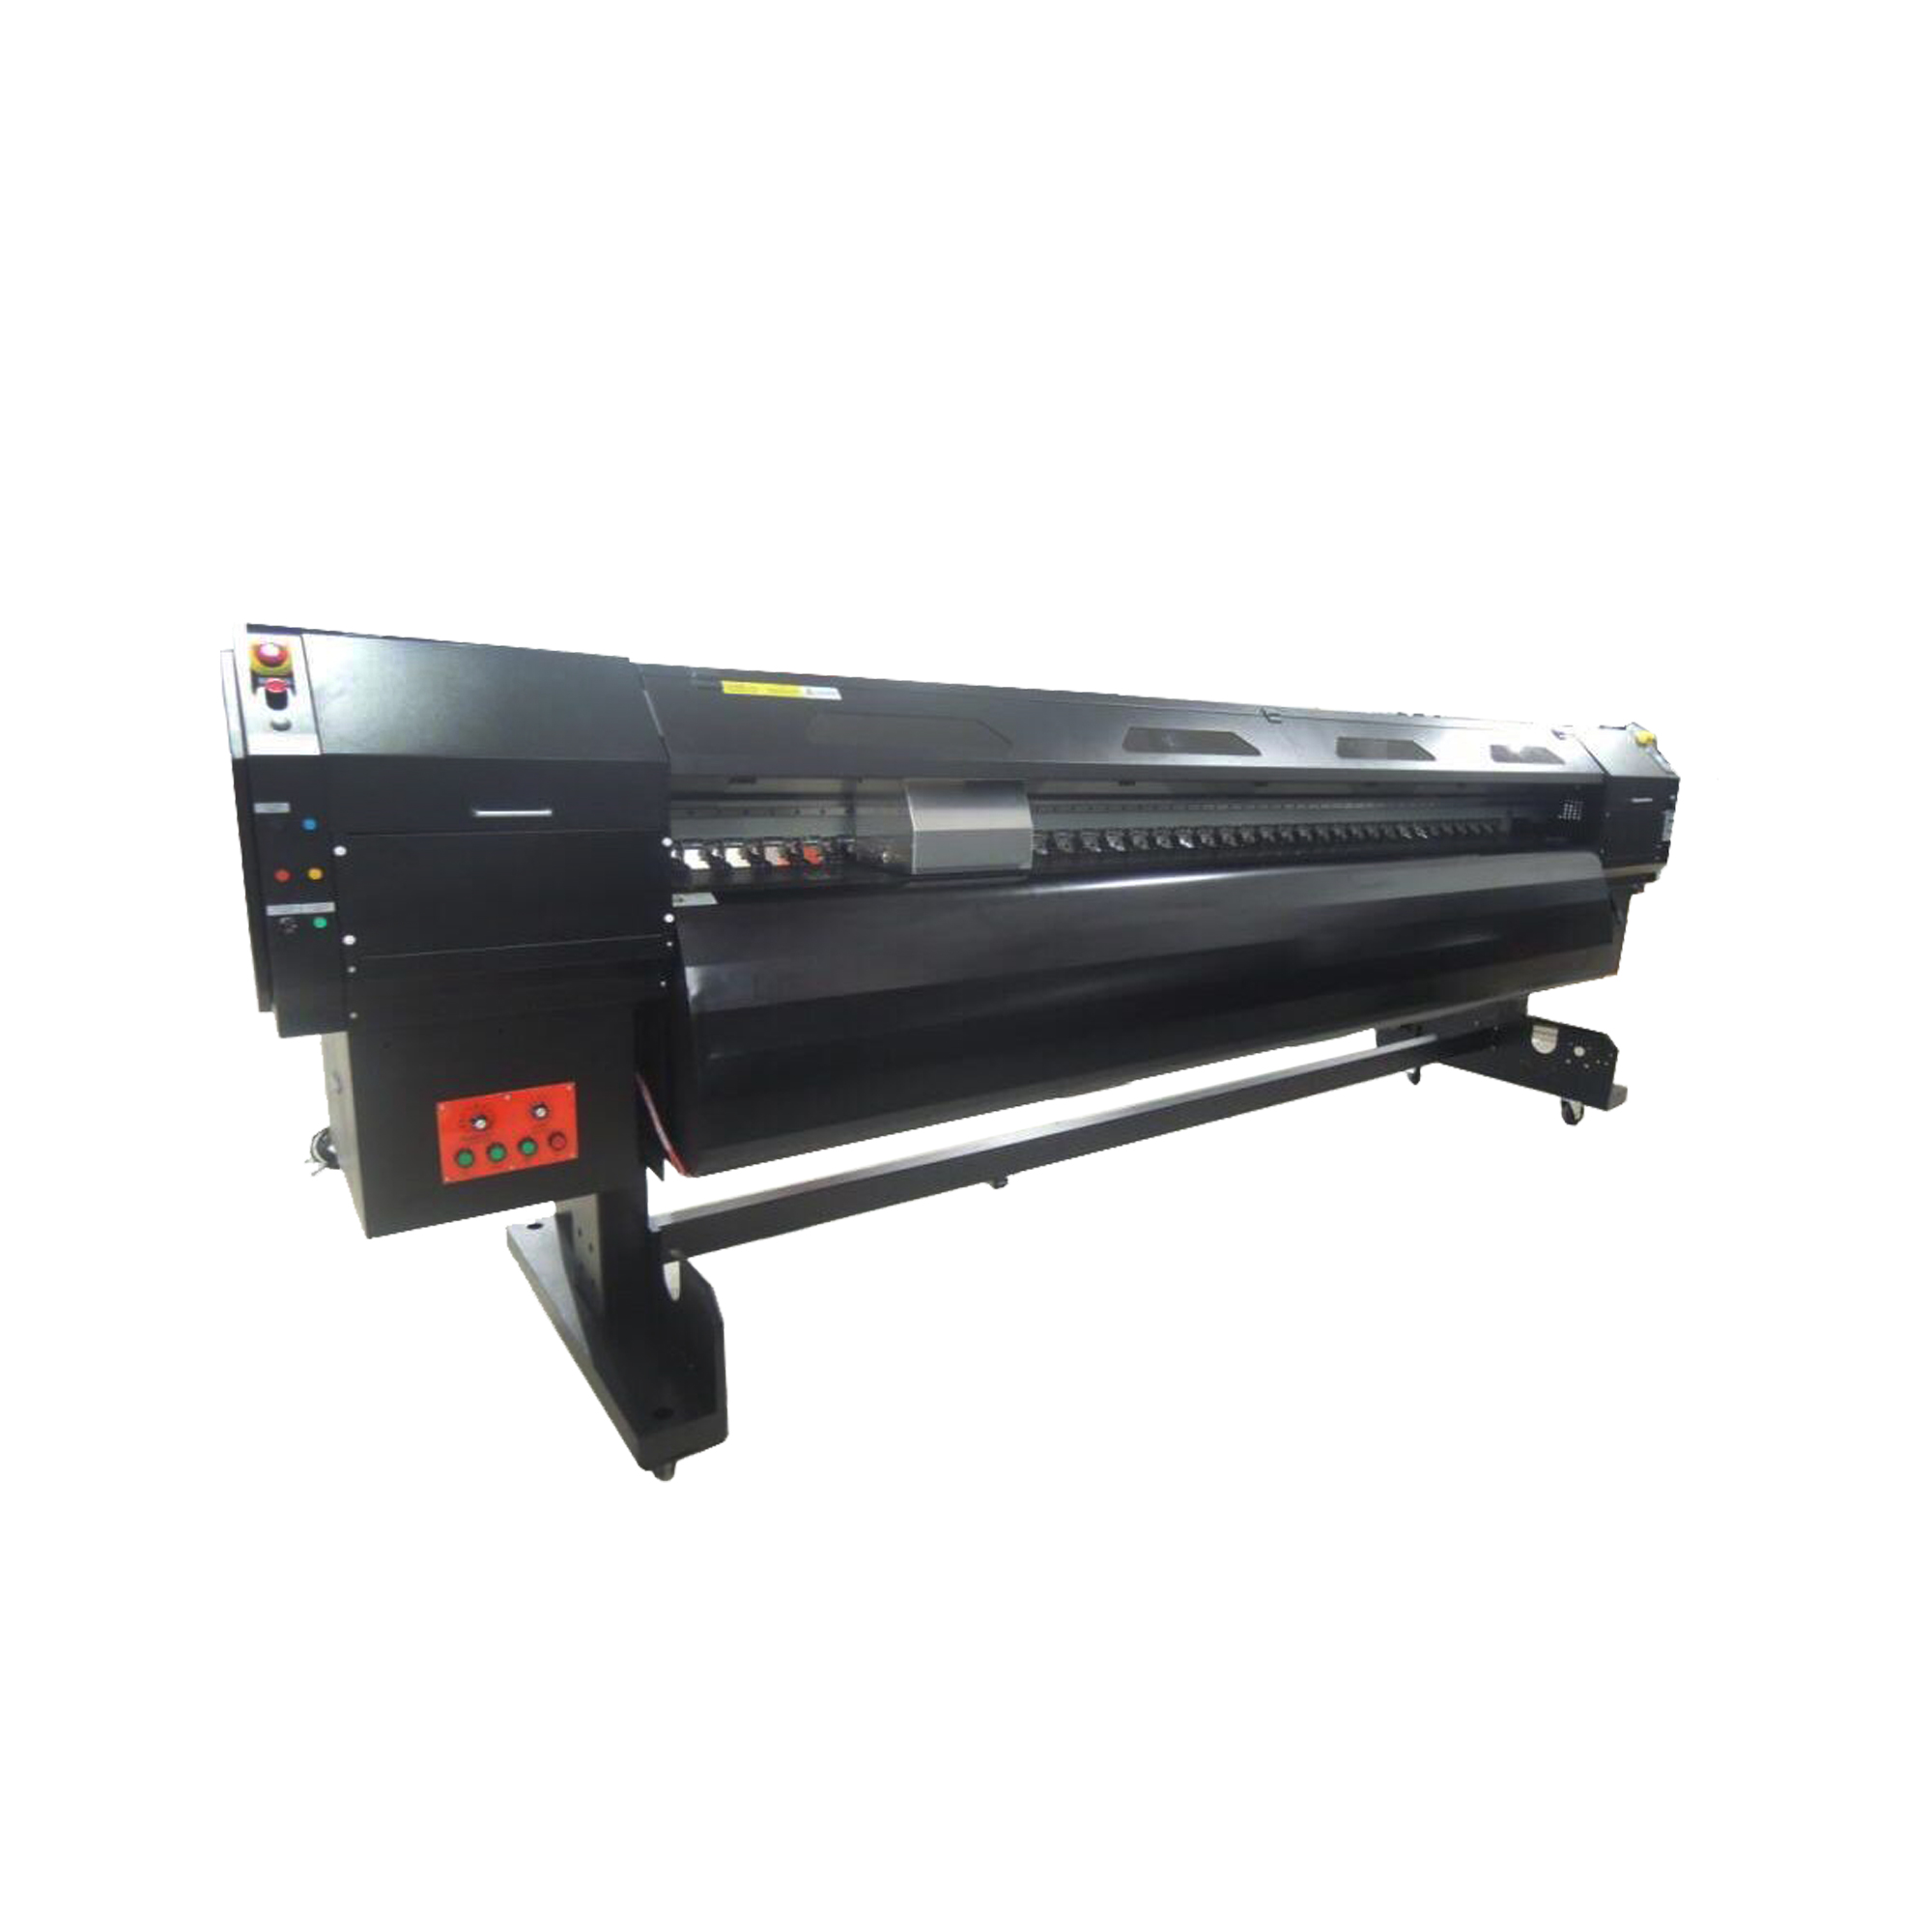 wide format printer konica 512i Solvent printer 3.2m large format printer